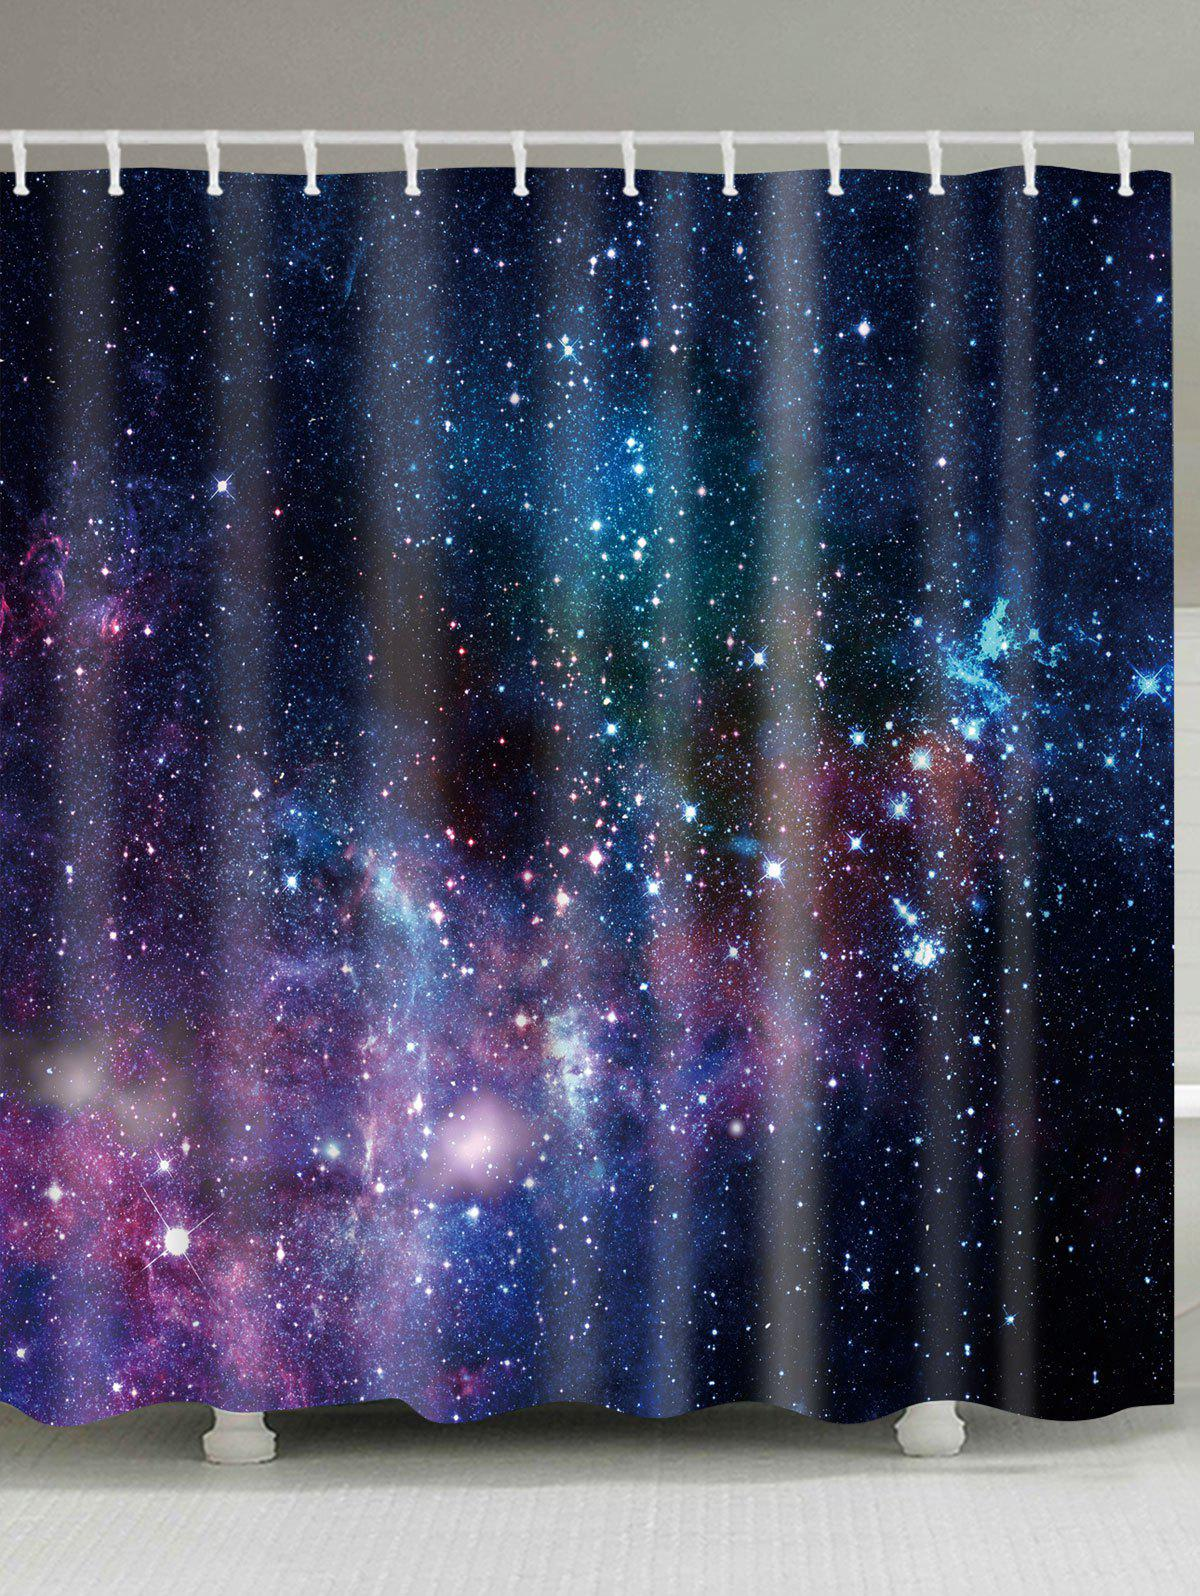 Galaxy Print Waterproof Fabric Bathroom Shower Curtain